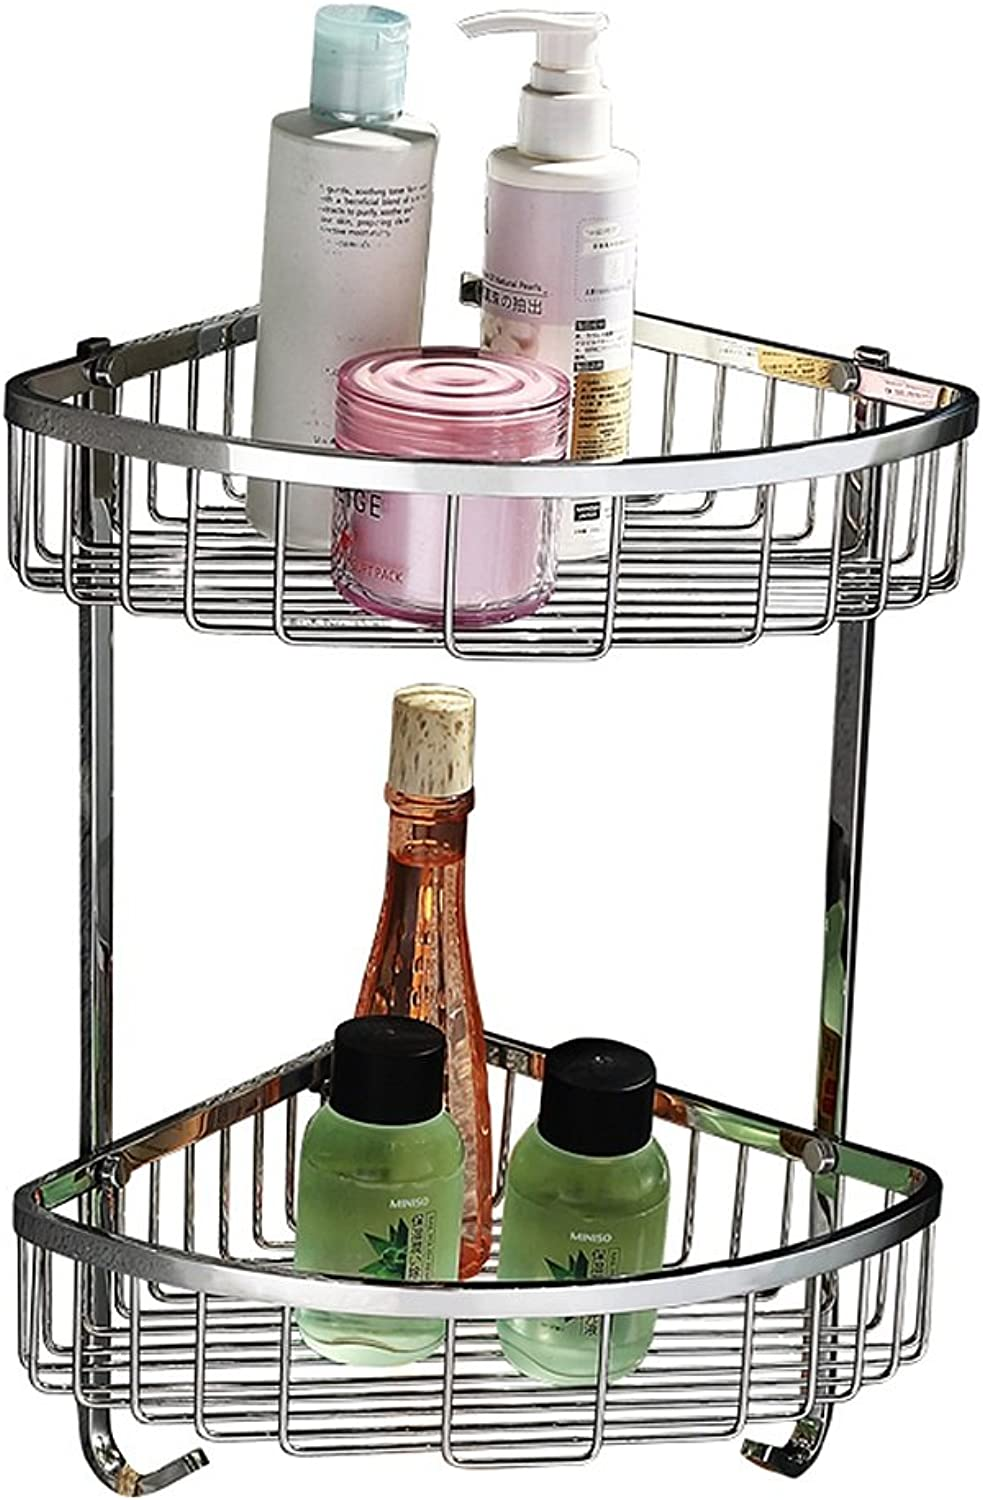 Yxsd Silver Stainless Steel Bathroom Storage Rack, 2 Tier Kitchen Bathroom Wall Rack Storage Net Basket, 360  220  220mm